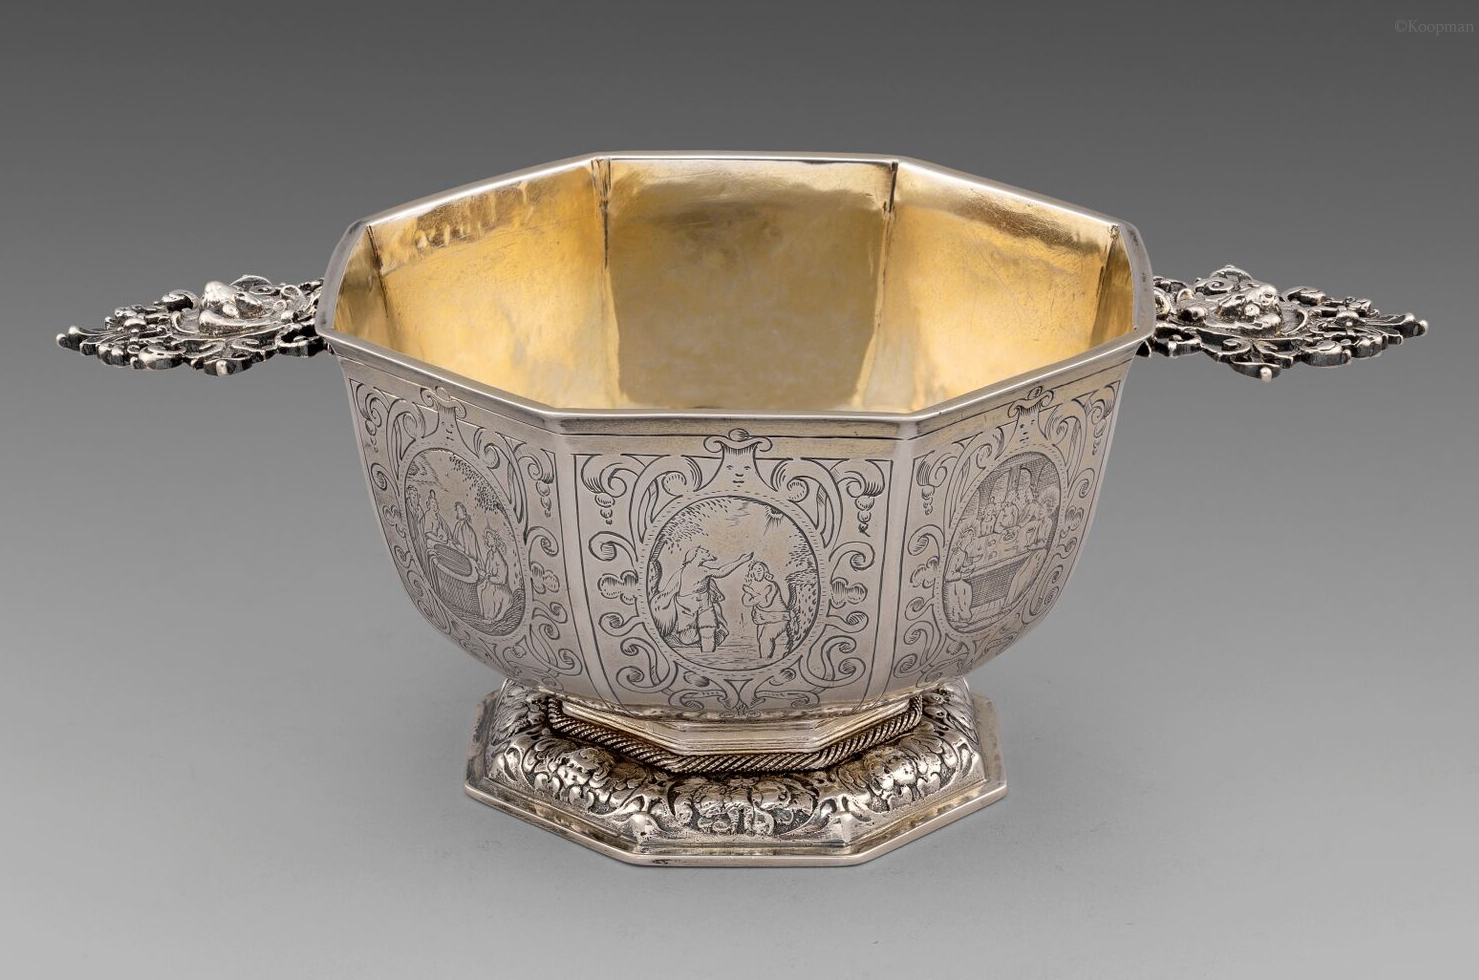 An Exceptional 17th Century Dutch Octagonal Brandy Pan